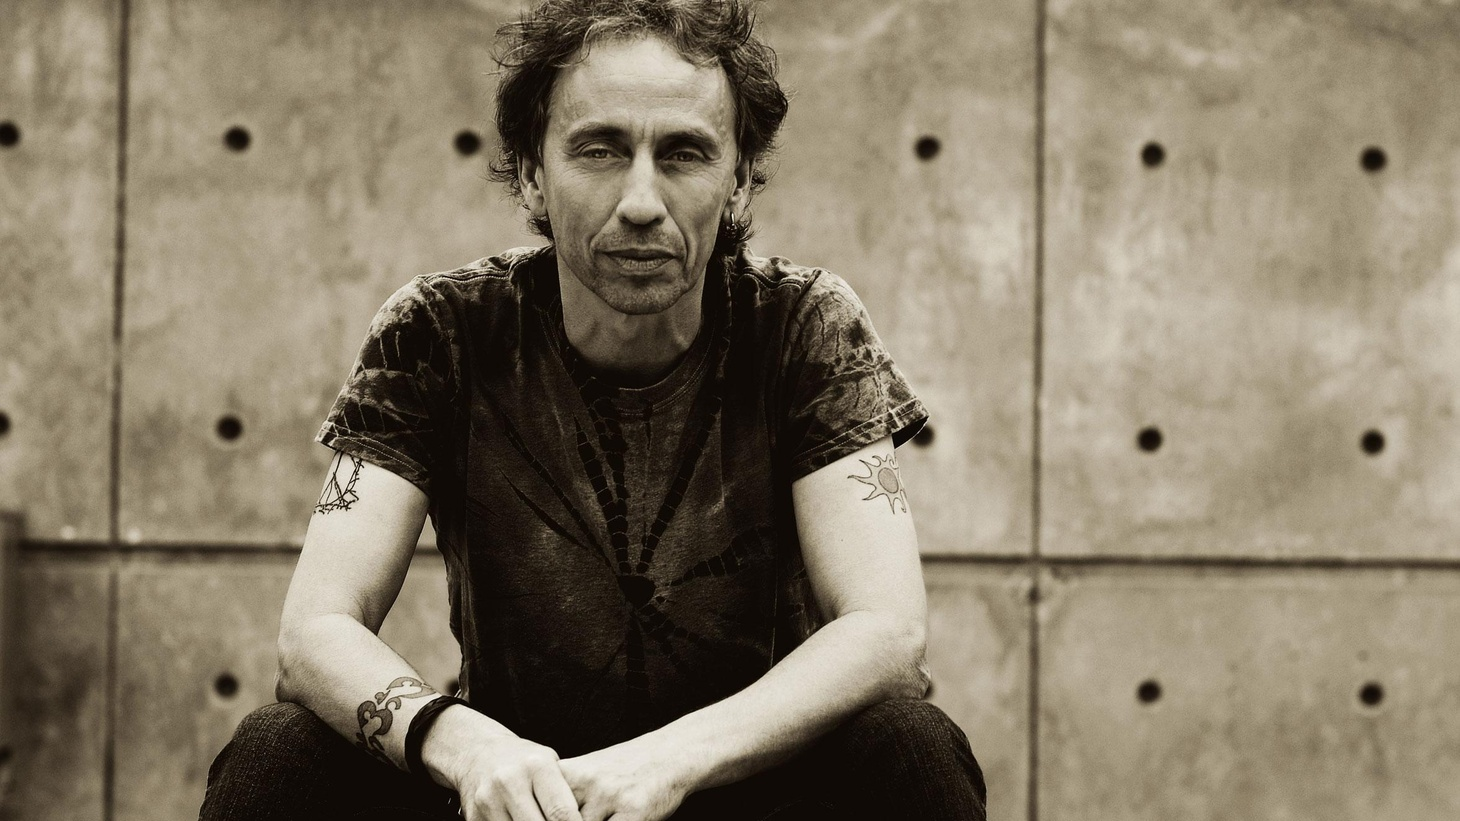 On this edition of Sounds Eclectic, host Nic Harcourt plays new, upcoming and  recent releases from Ry Cooder, Feist, and the latest from Morcheeba. Plus a live in-studio performance from Deadman, all this and much more on Sounds Eclectic.